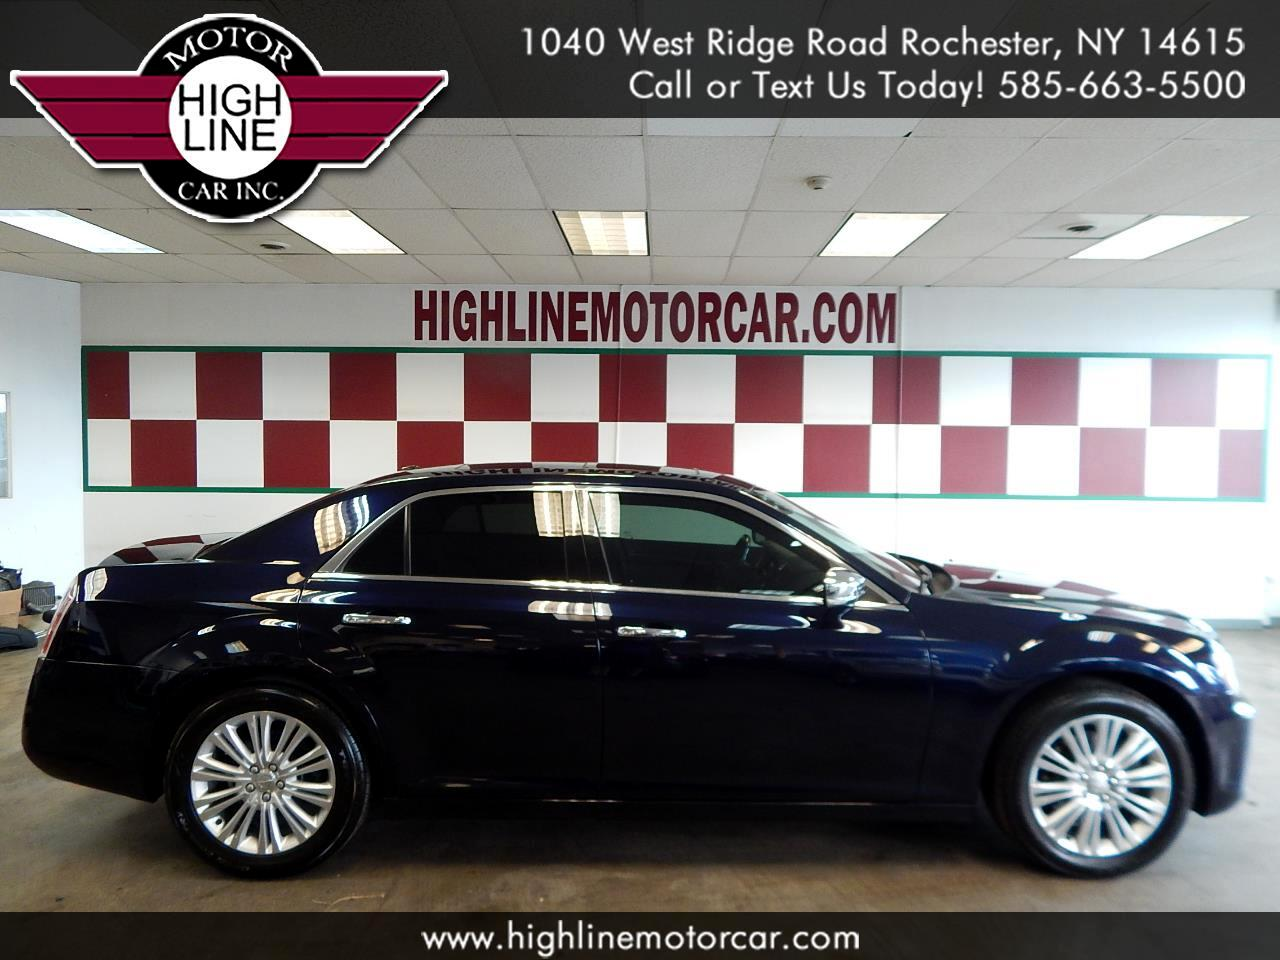 2011 Chrysler 300 4dr Sdn 300C AWD